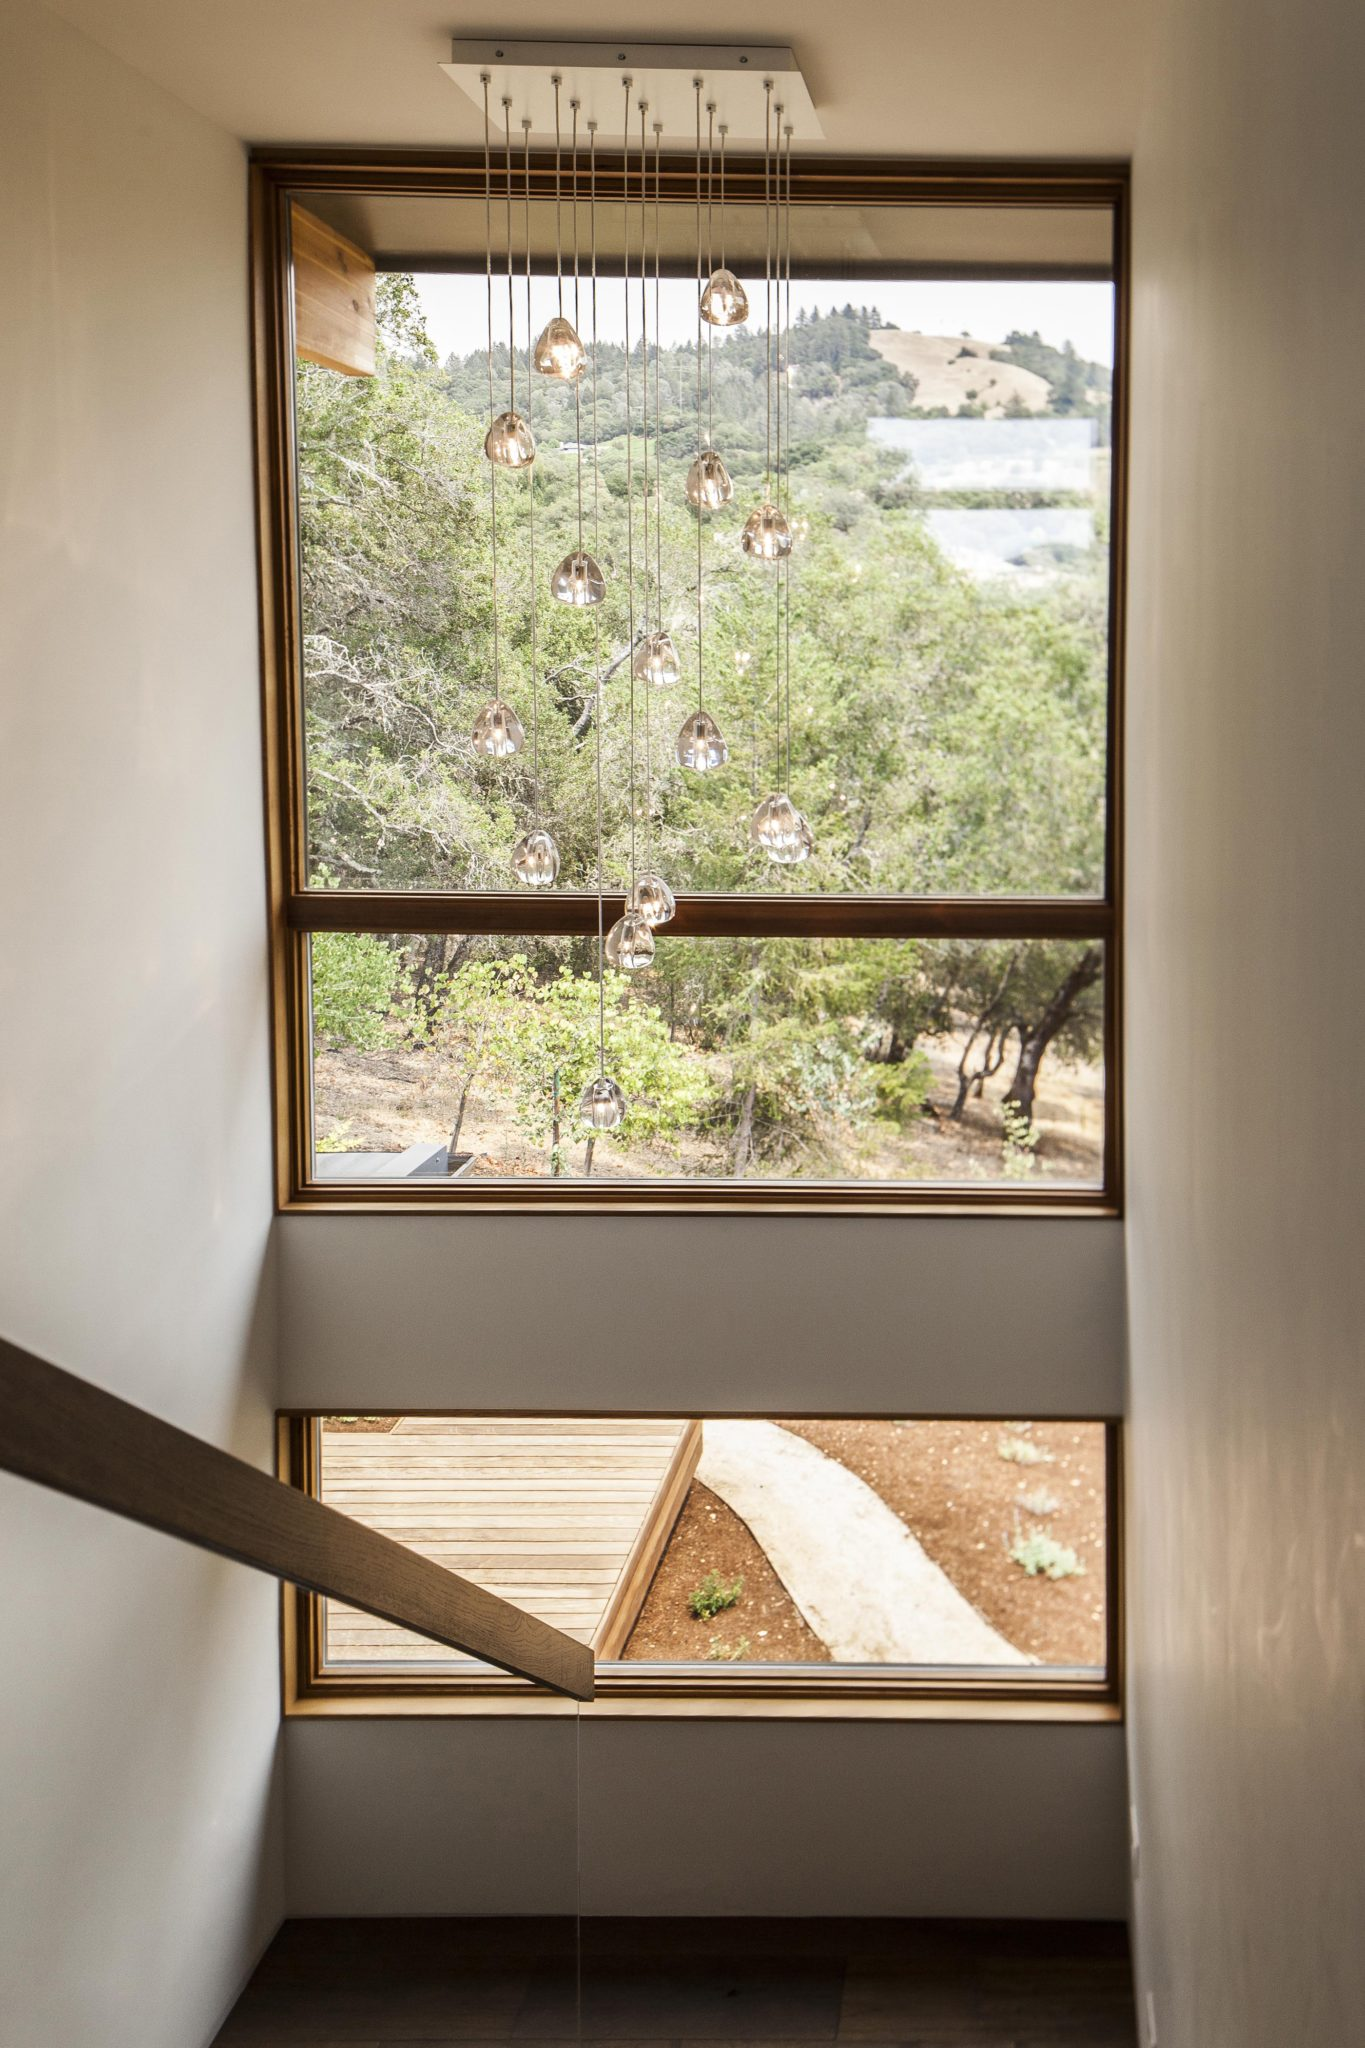 Framed against the landscape through the window behind it, thisMizu15-light pendant from Terzanidecorates the staircase.